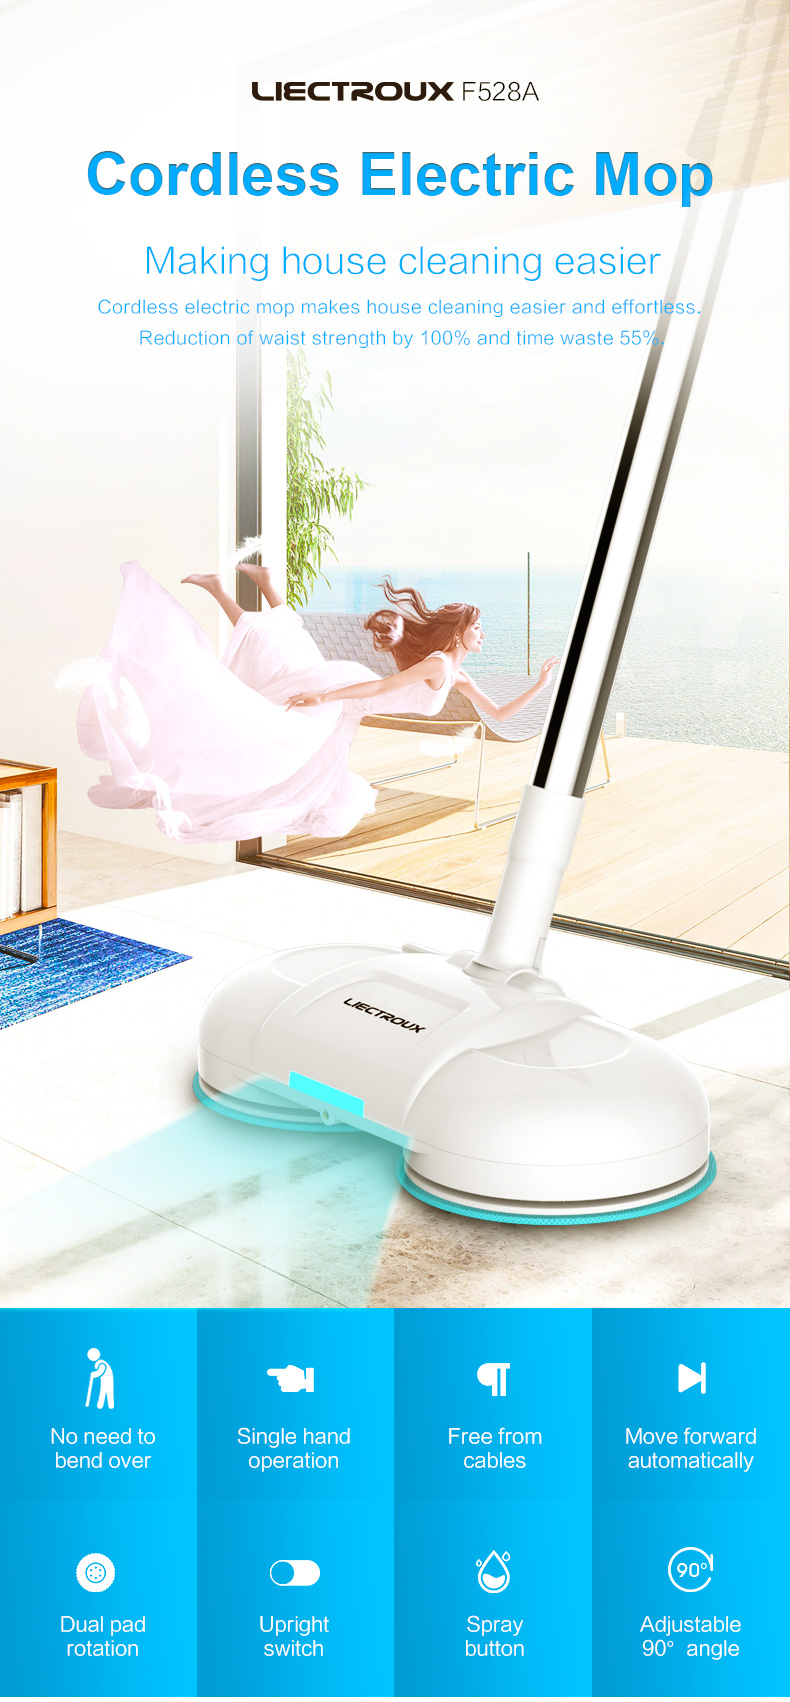 LIECTROUX F528A Cordless Dual Spin Electric Mop & Waxer with Water Spray & Wax Spray Functions,Wireless Mopping and Waxing Robot